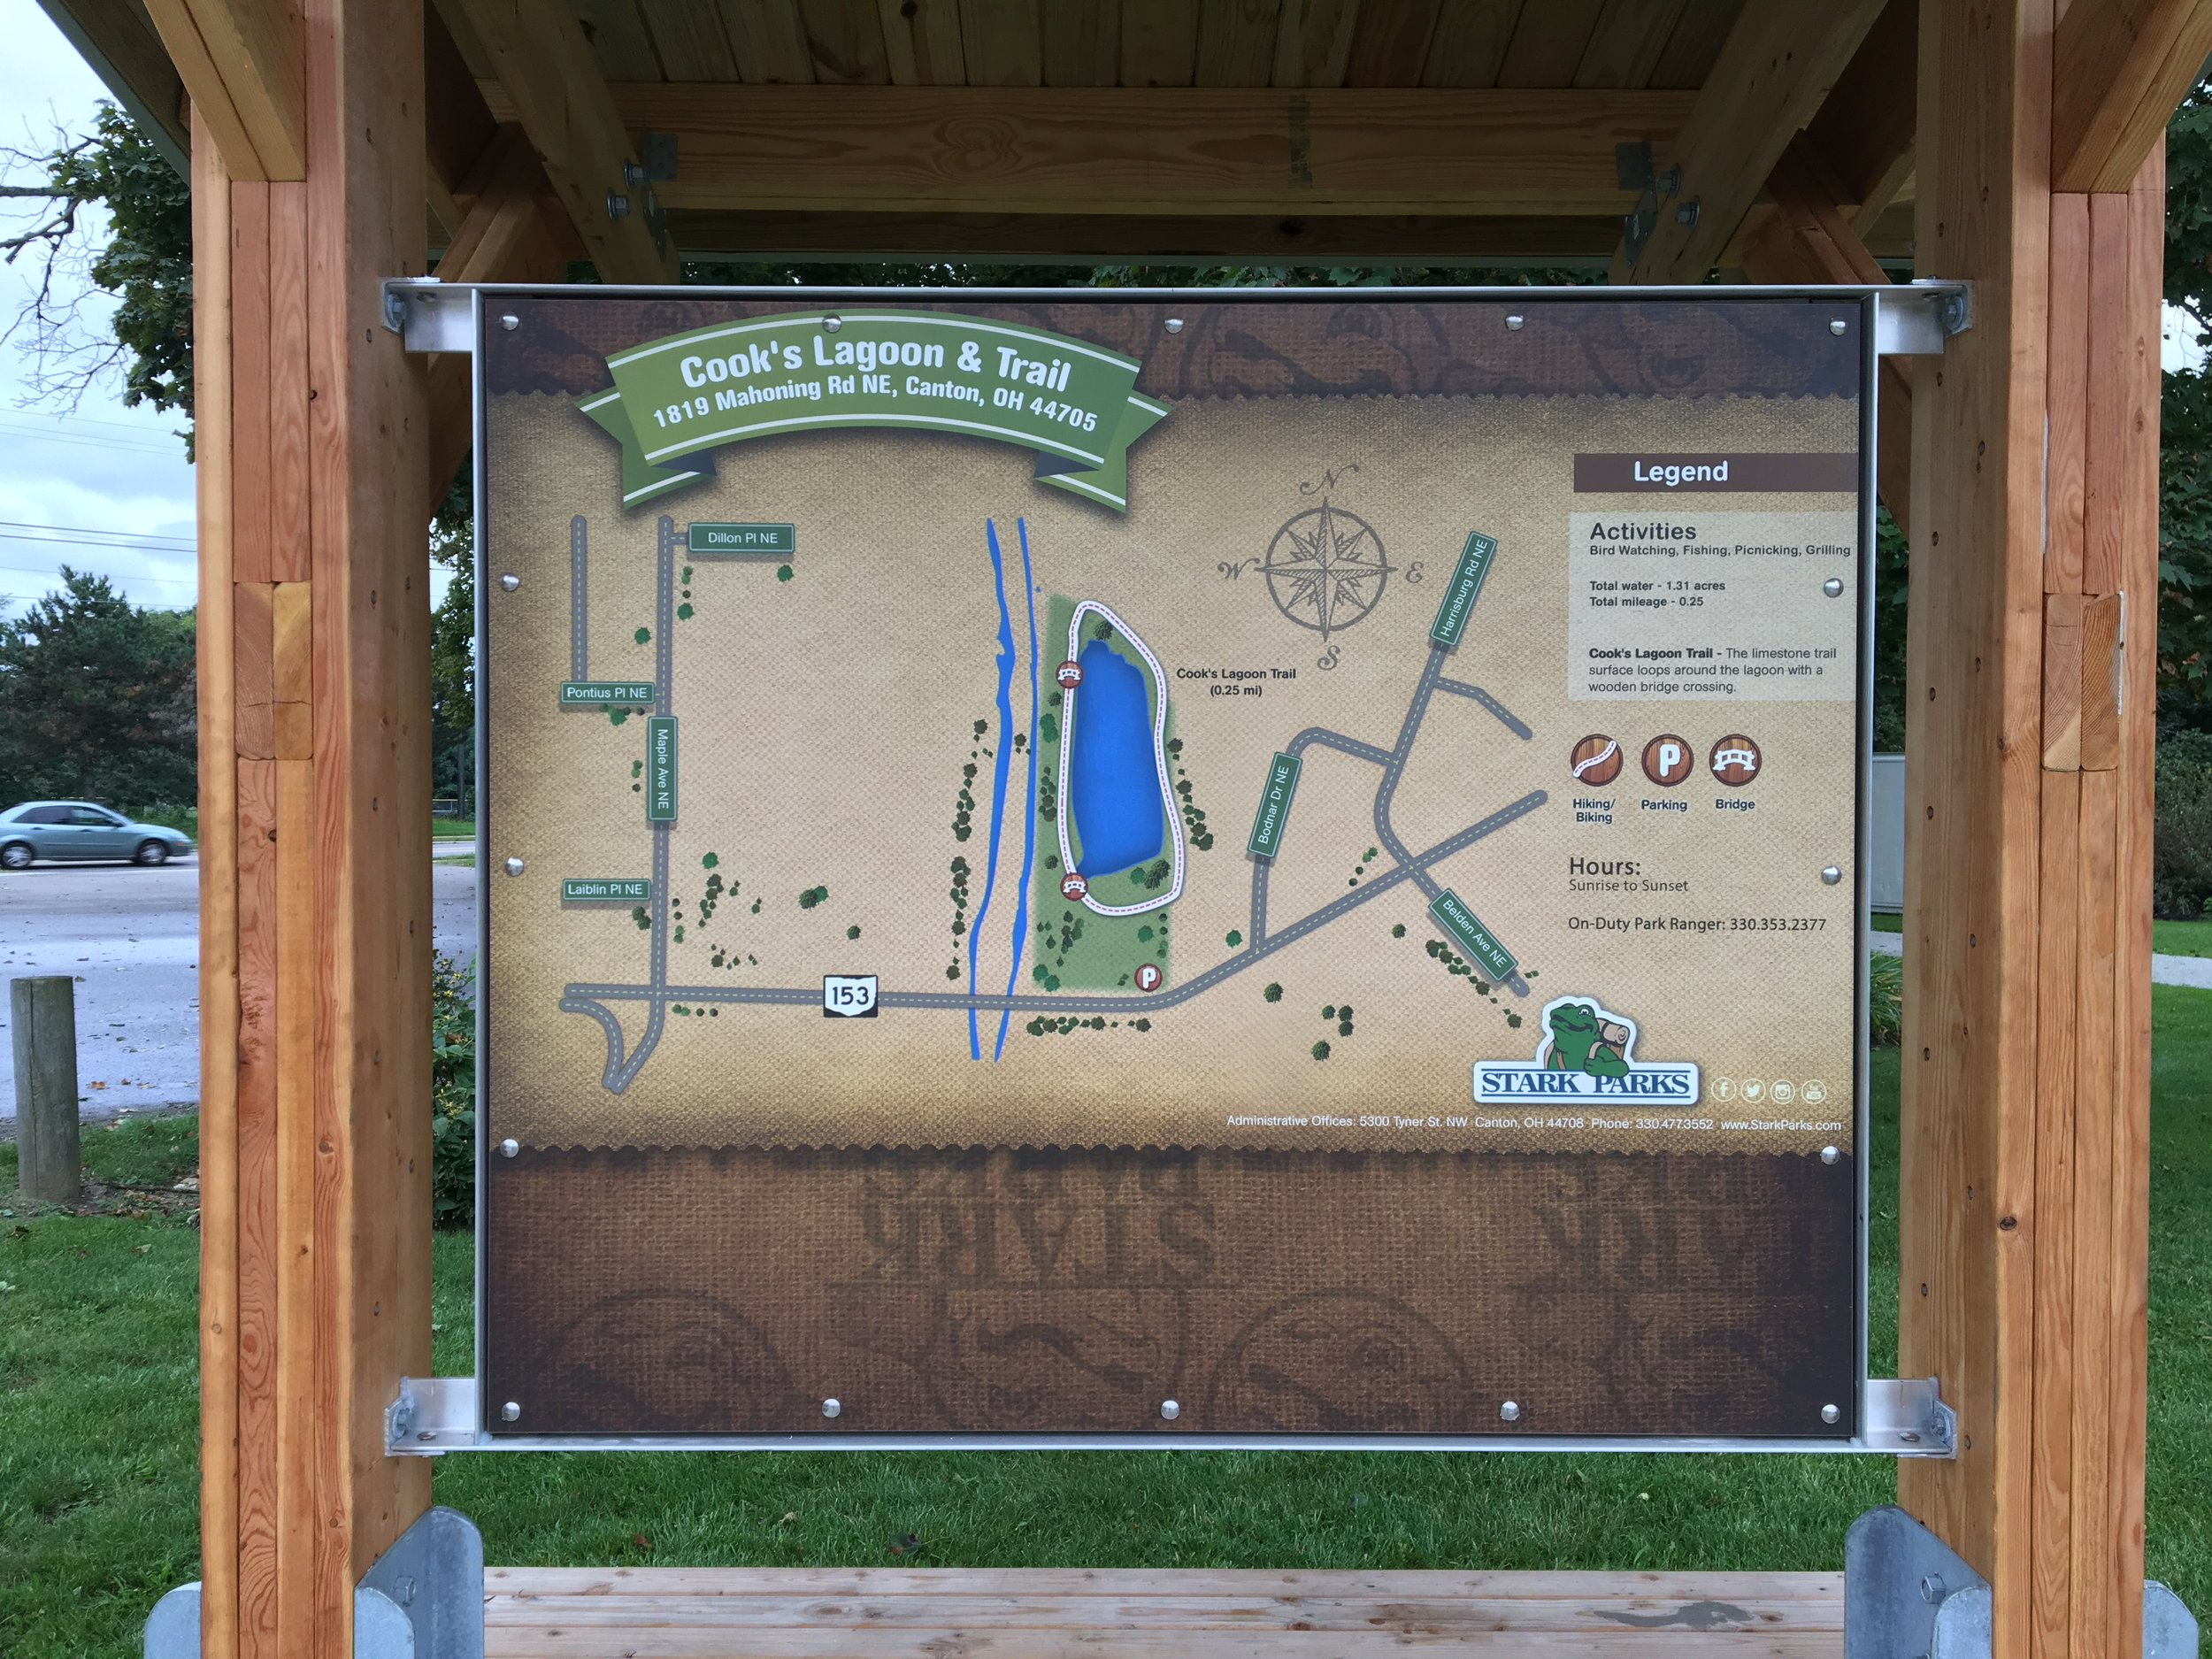 ROW 42 - Repaired County Park - Cook's Lagoon.jpeg